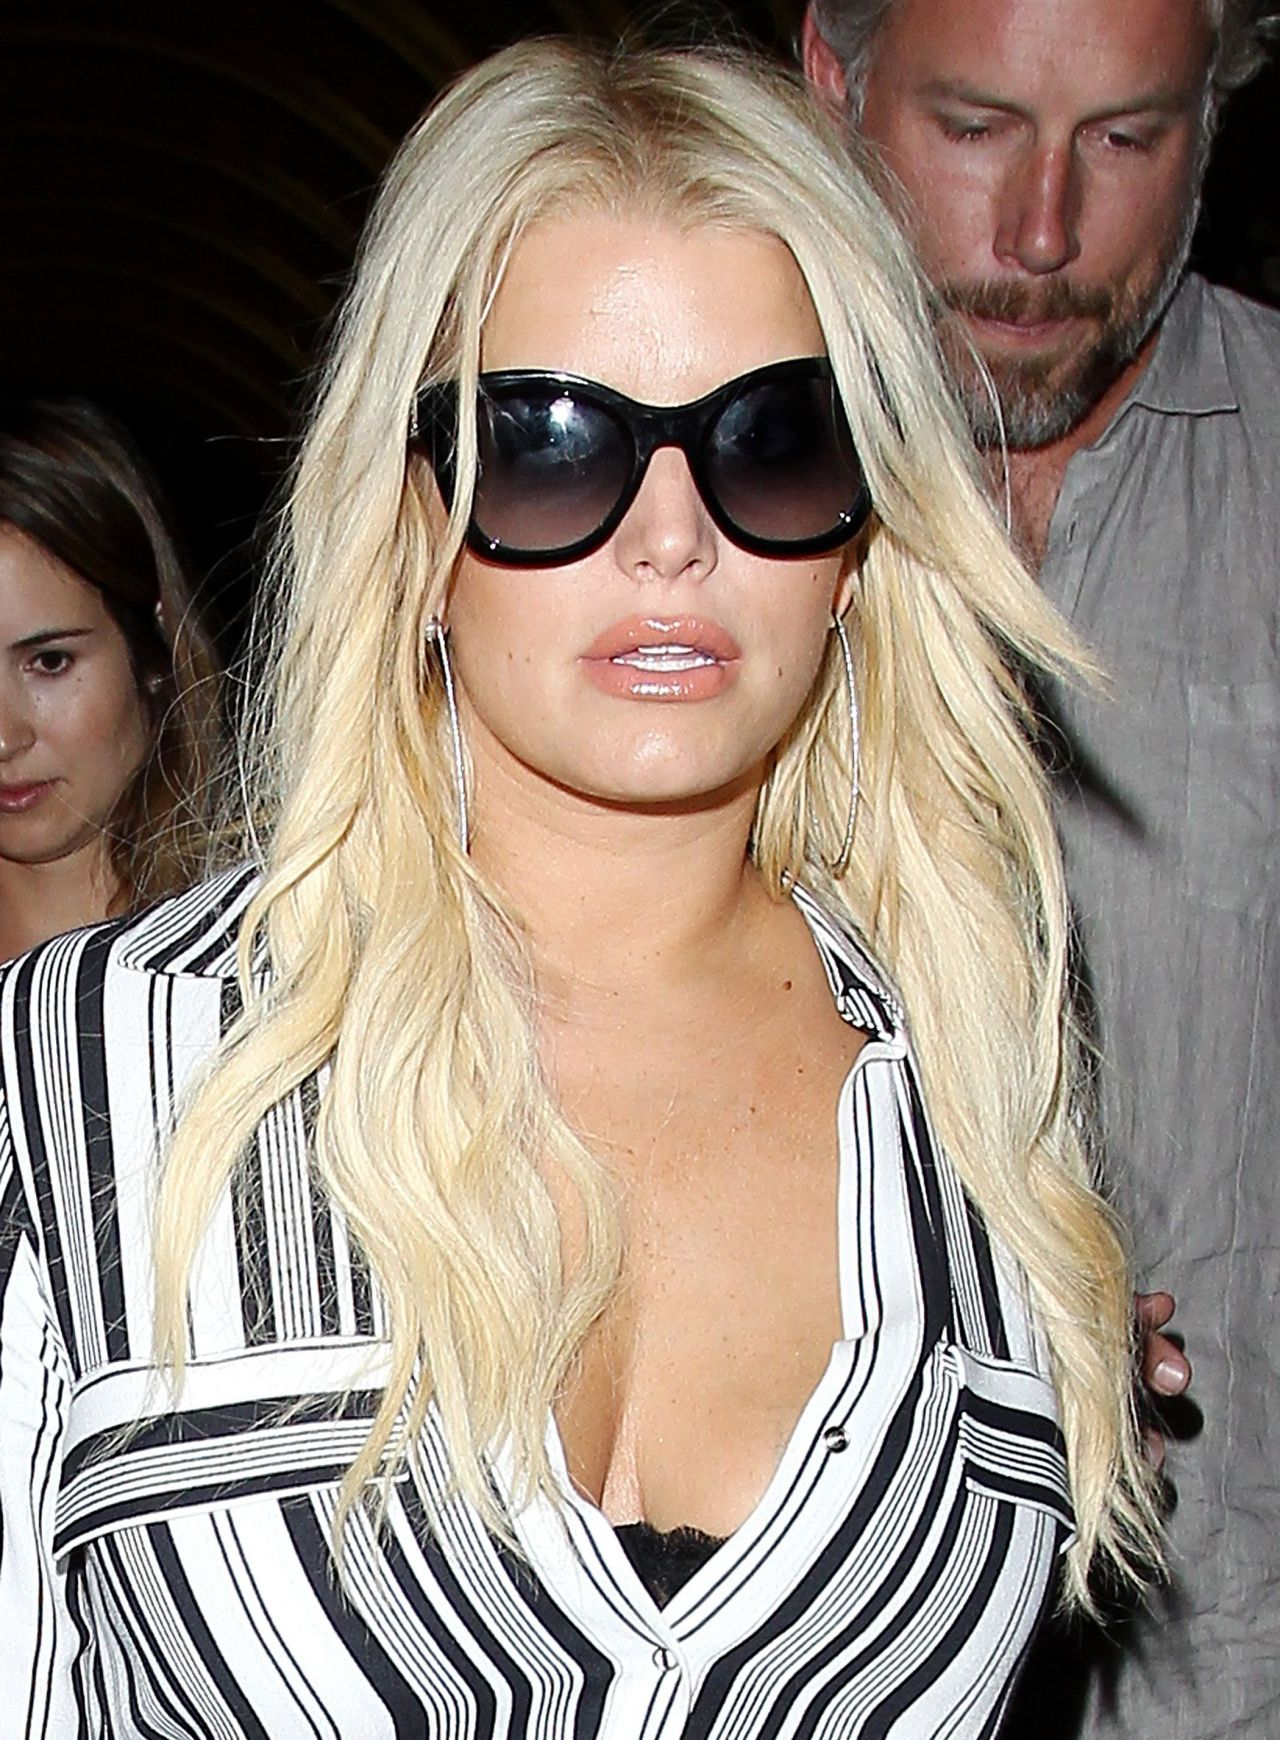 26bdecb3d3b3 Jessica Simpson Airport Style - at LAX Airport in Los Angeles ...